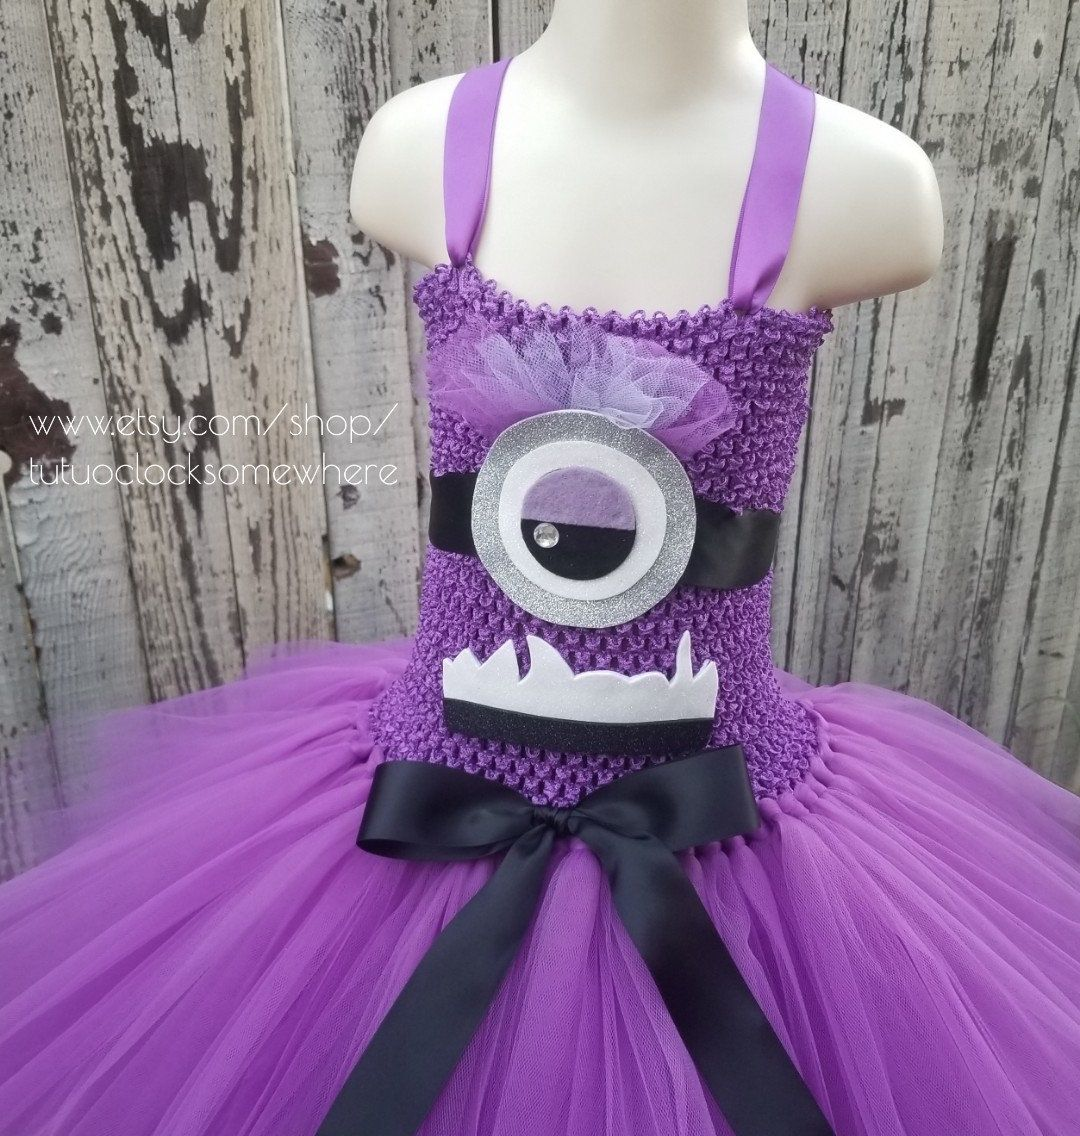 Minion Tutu Dress Despicable Me Birthday Party Halloween Costume Angry Minion Monster Purple Tutu Dress Baby Minion Tutu Tutu Dress Purple Tutu Dress [ 1136 x 1080 Pixel ]